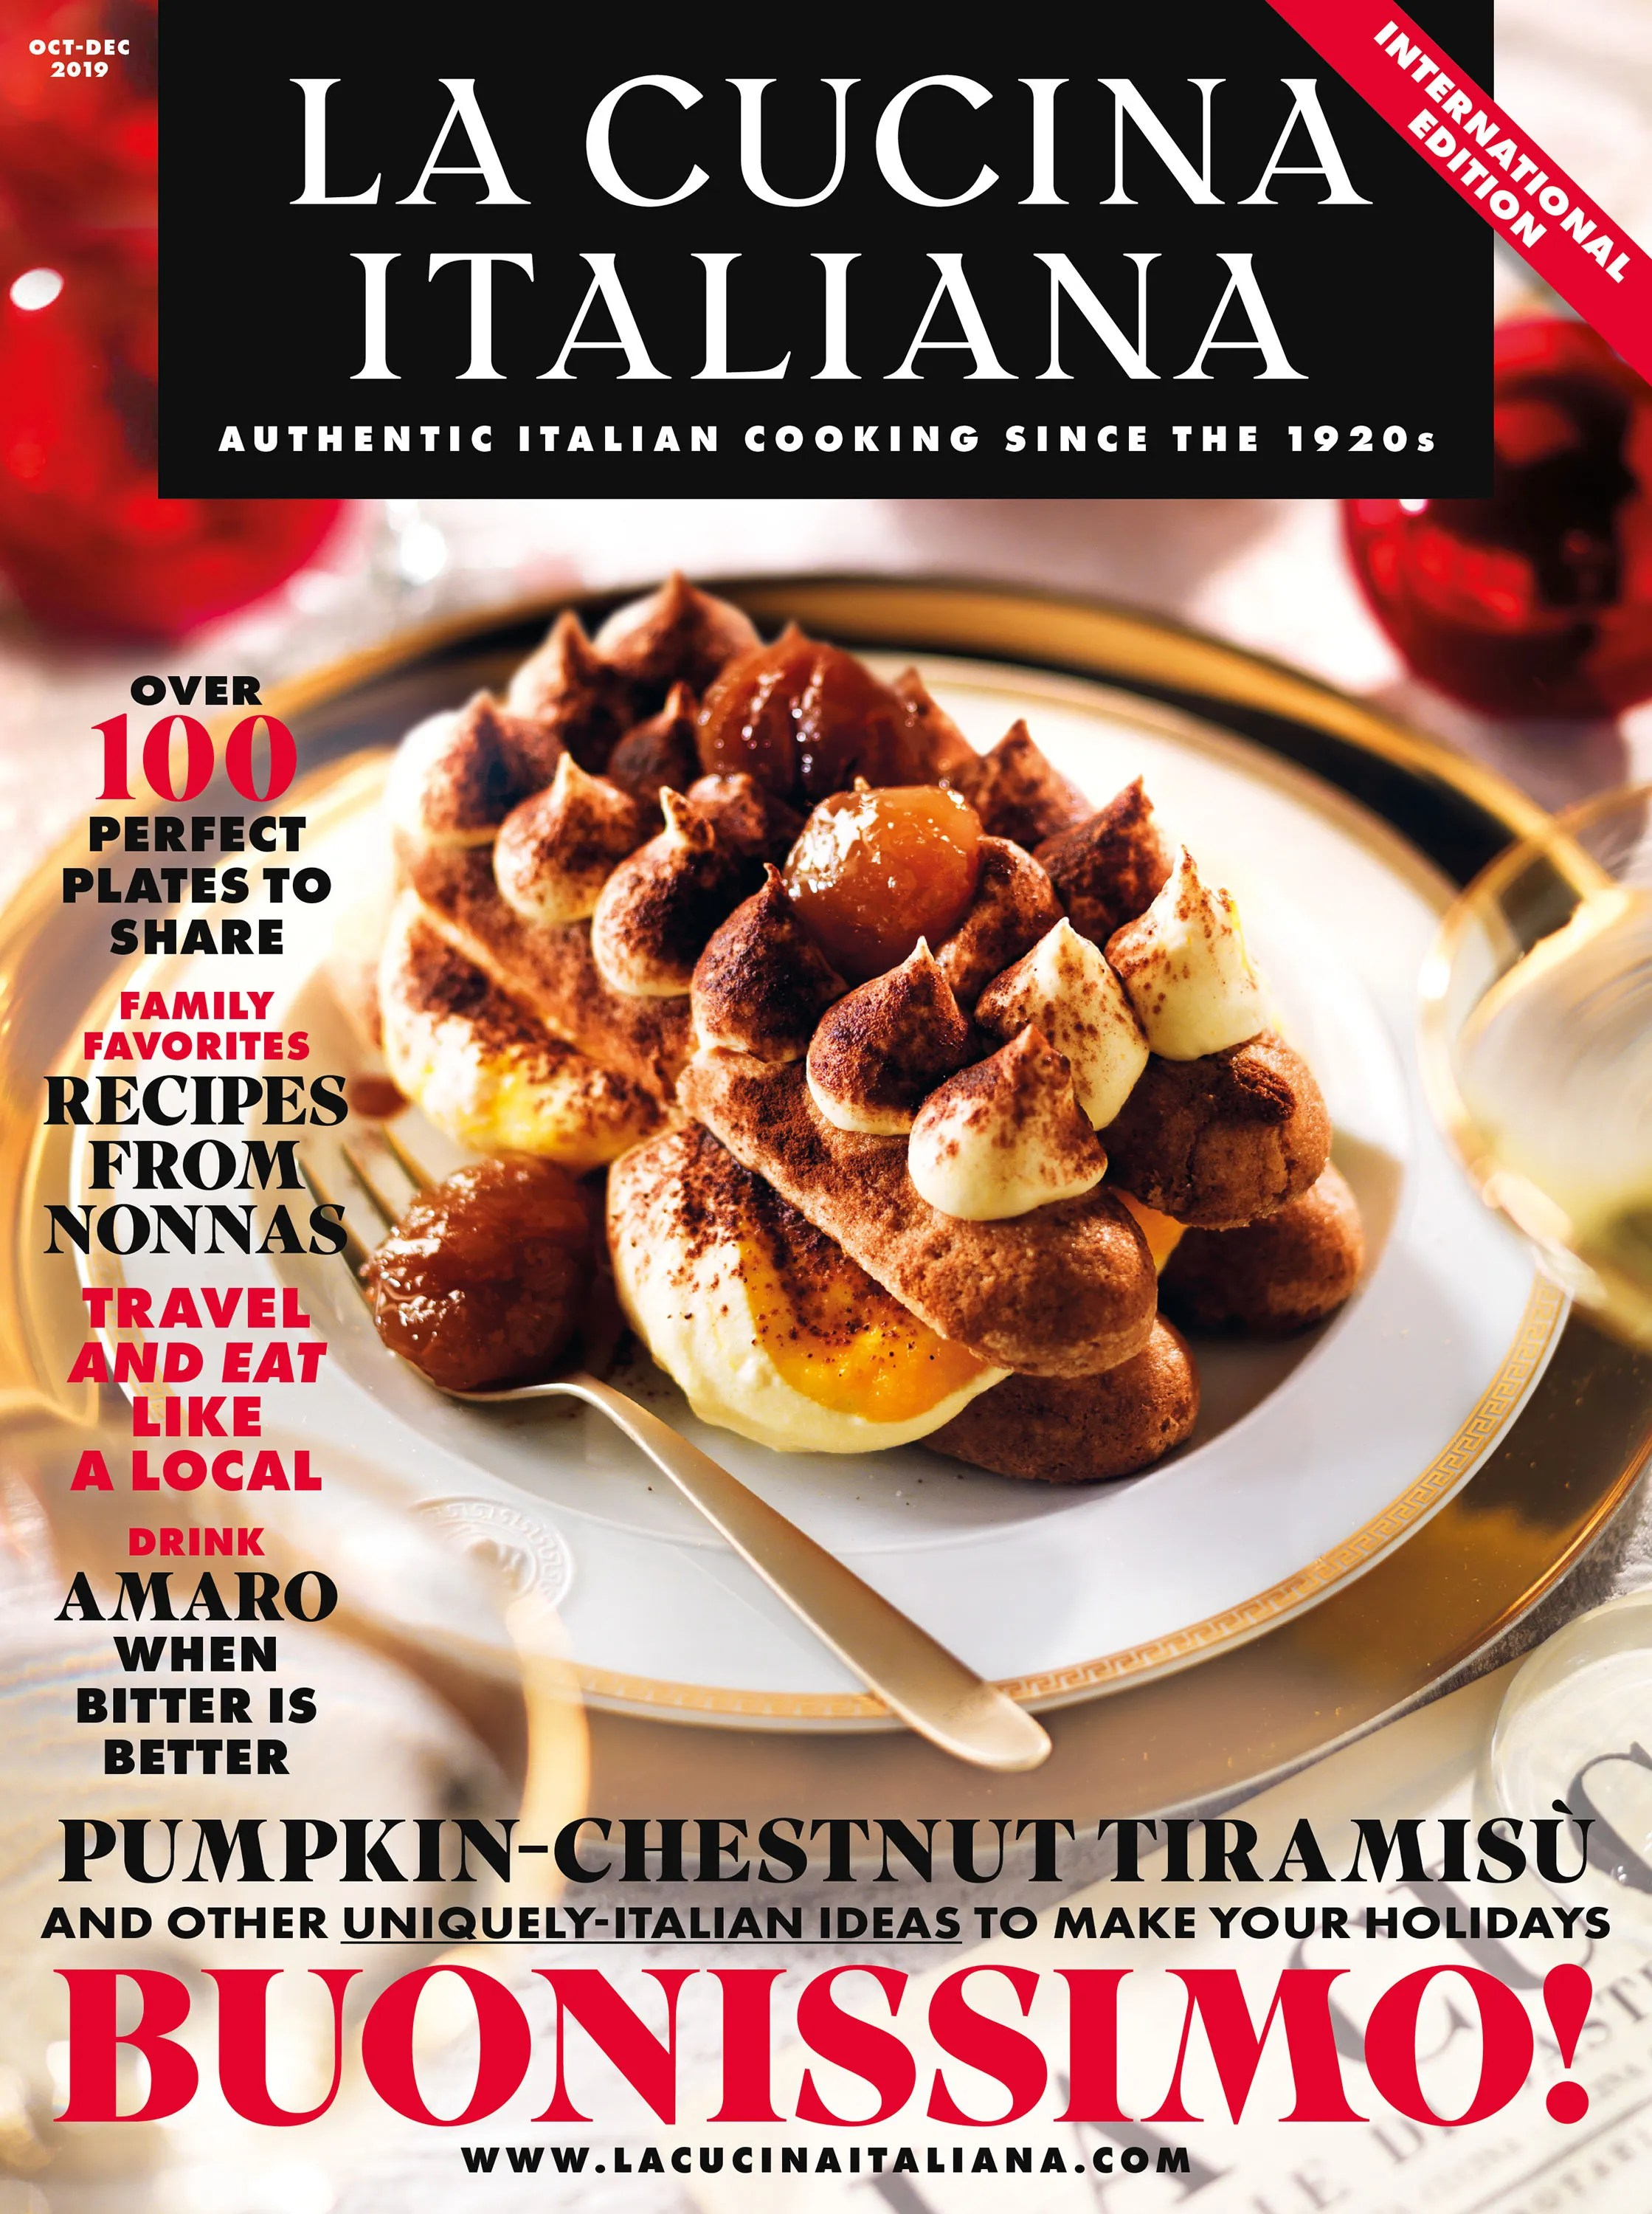 Legendary Culinary Magazine La Cucina Italiana Is Coming Back To The States Here S What To Expect Vogue